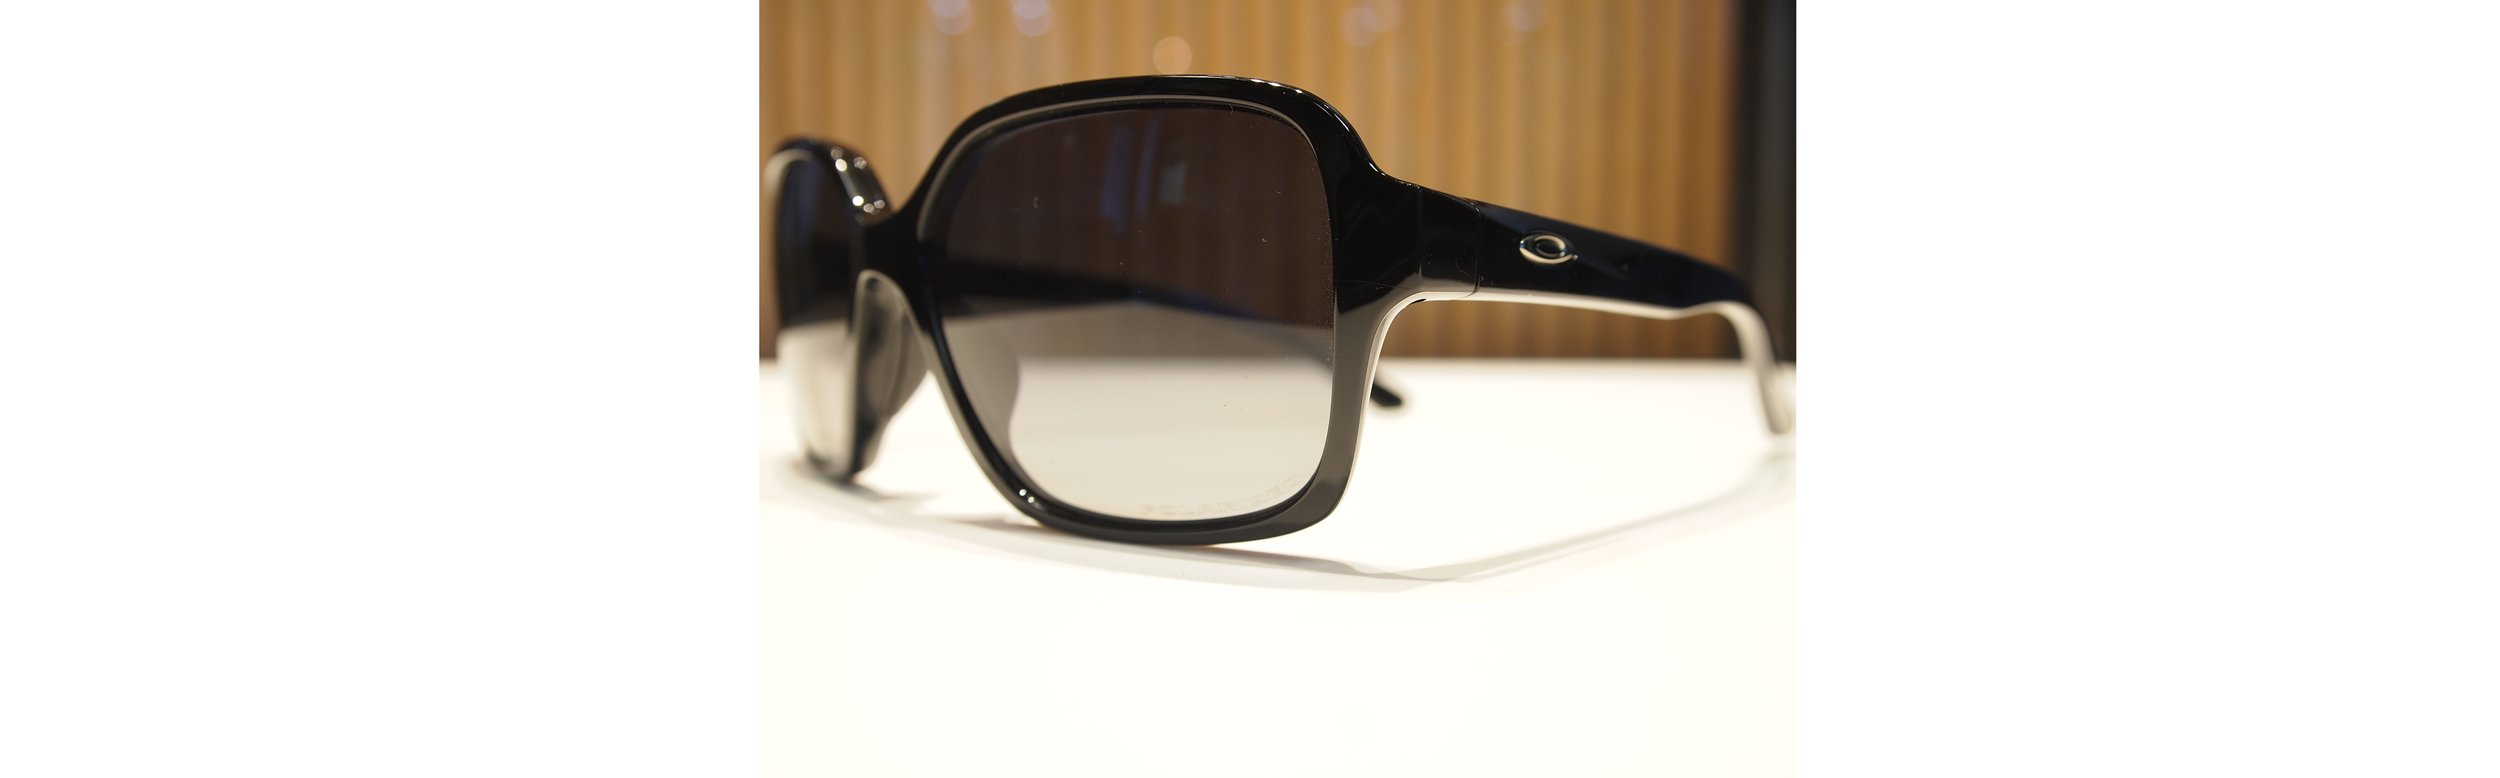 OakleyS 10B - Copy.JPG